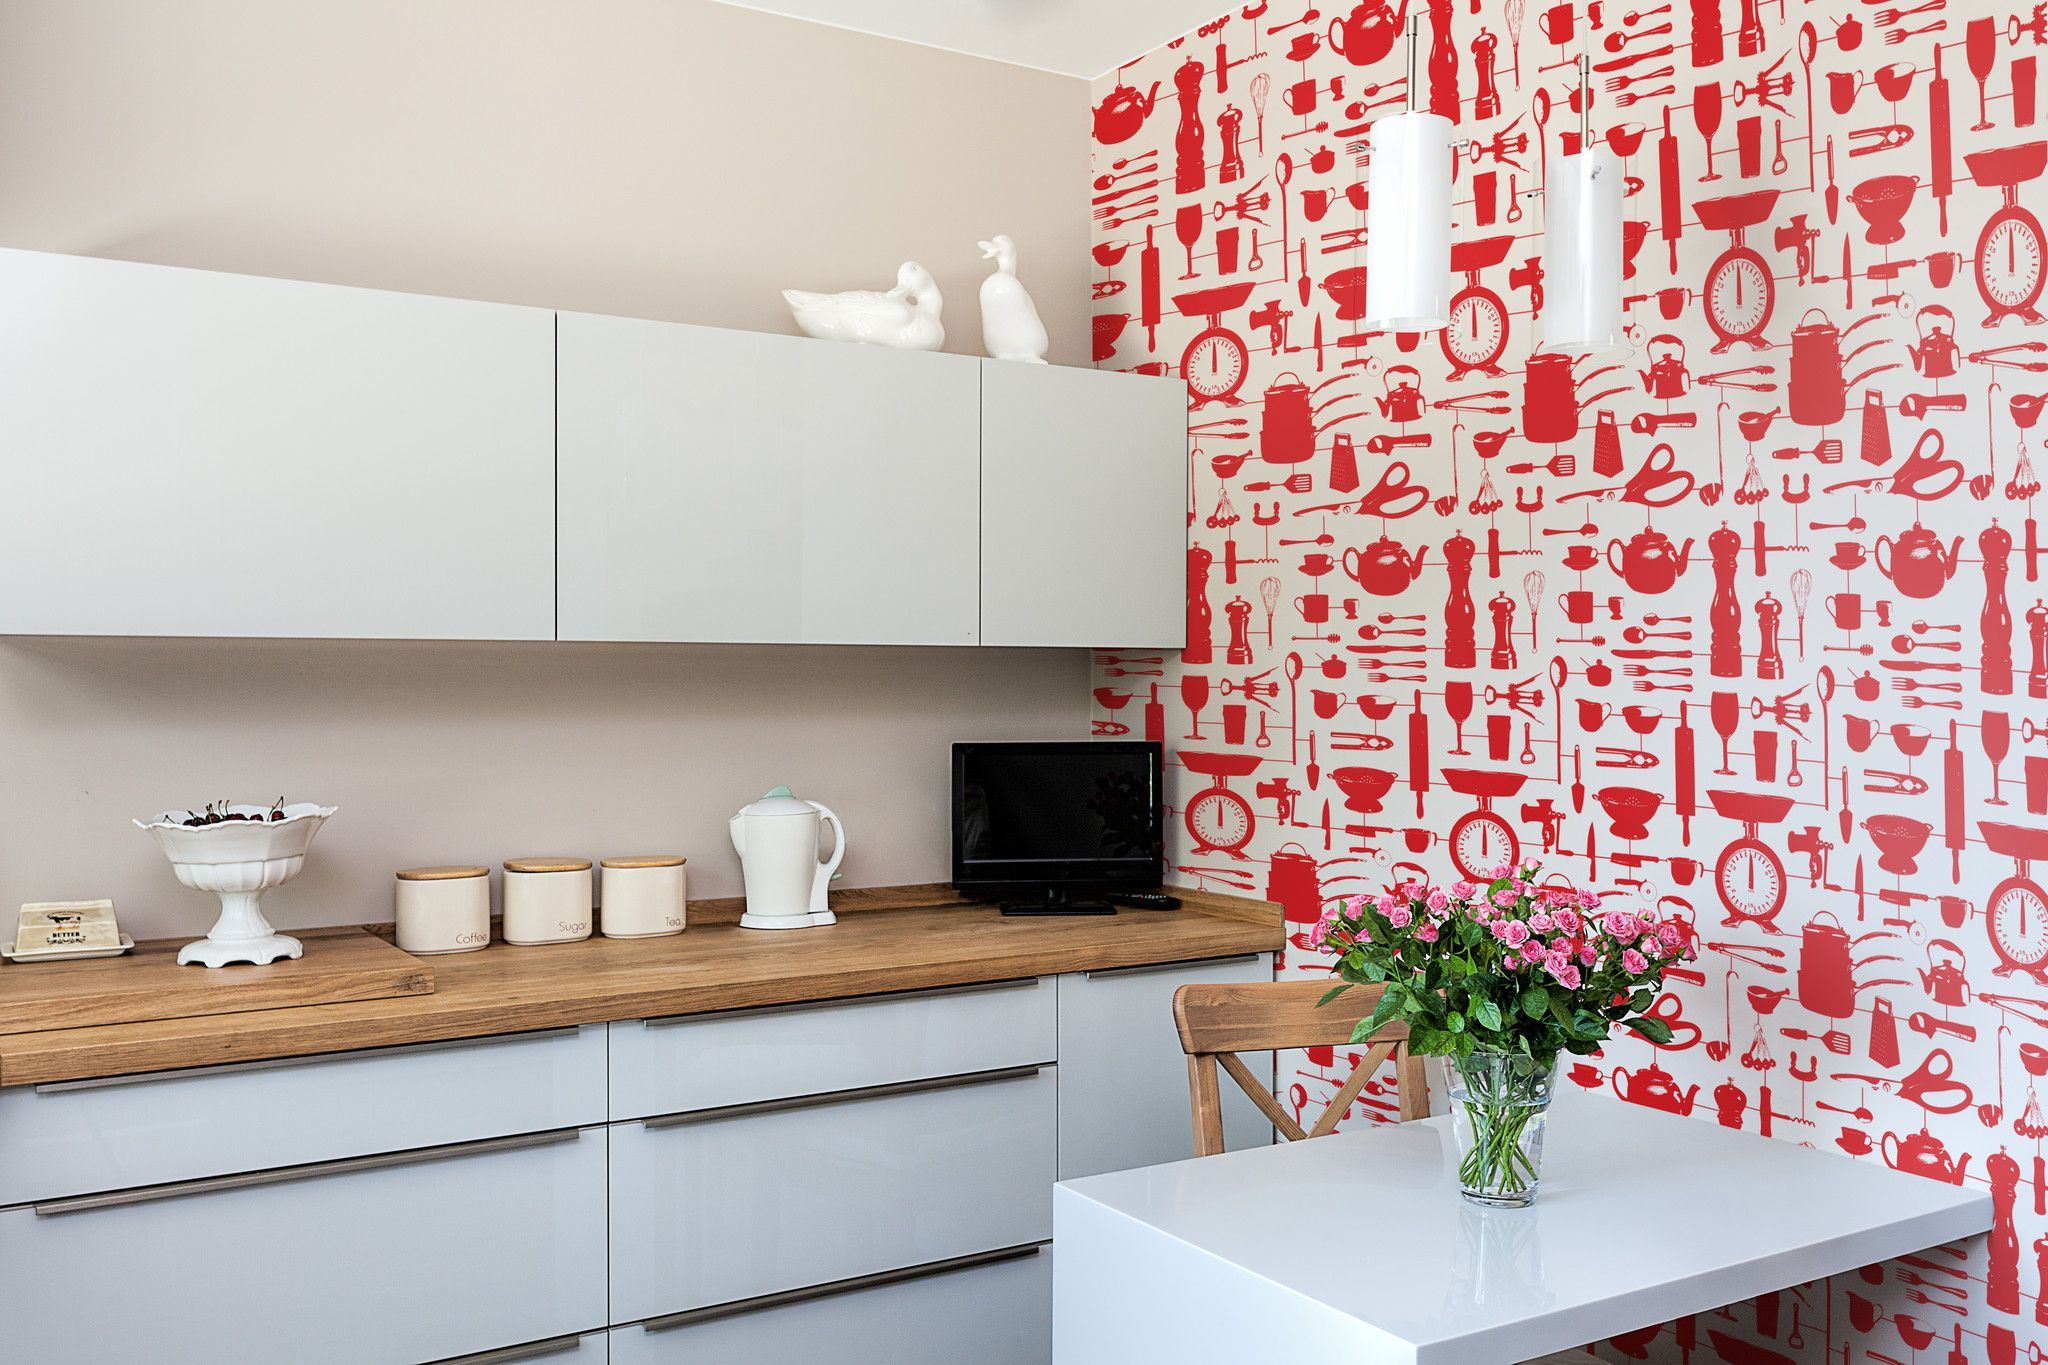 Airfix Kitchen Wallpaper in Red | House Colors in 2019 ... on kitchen signs ideas, kitchen bathroom ideas, kitchen wood ideas, simple rustic kitchen ideas, kitchen banquette seating ideas, kitchen rugs ideas, kitchen photography ideas, country kitchen ideas, kitchen counter ideas, kitchen cutouts ideas, kitchen electrical ideas, contemporary kitchen ideas, kitchen murals ideas, small kitchen remodeling ideas, kitchen background ideas, kitchen design, kitchen embroidery ideas, kitchen newspaper ideas, kitchen tools ideas, pinterest kitchen ideas,